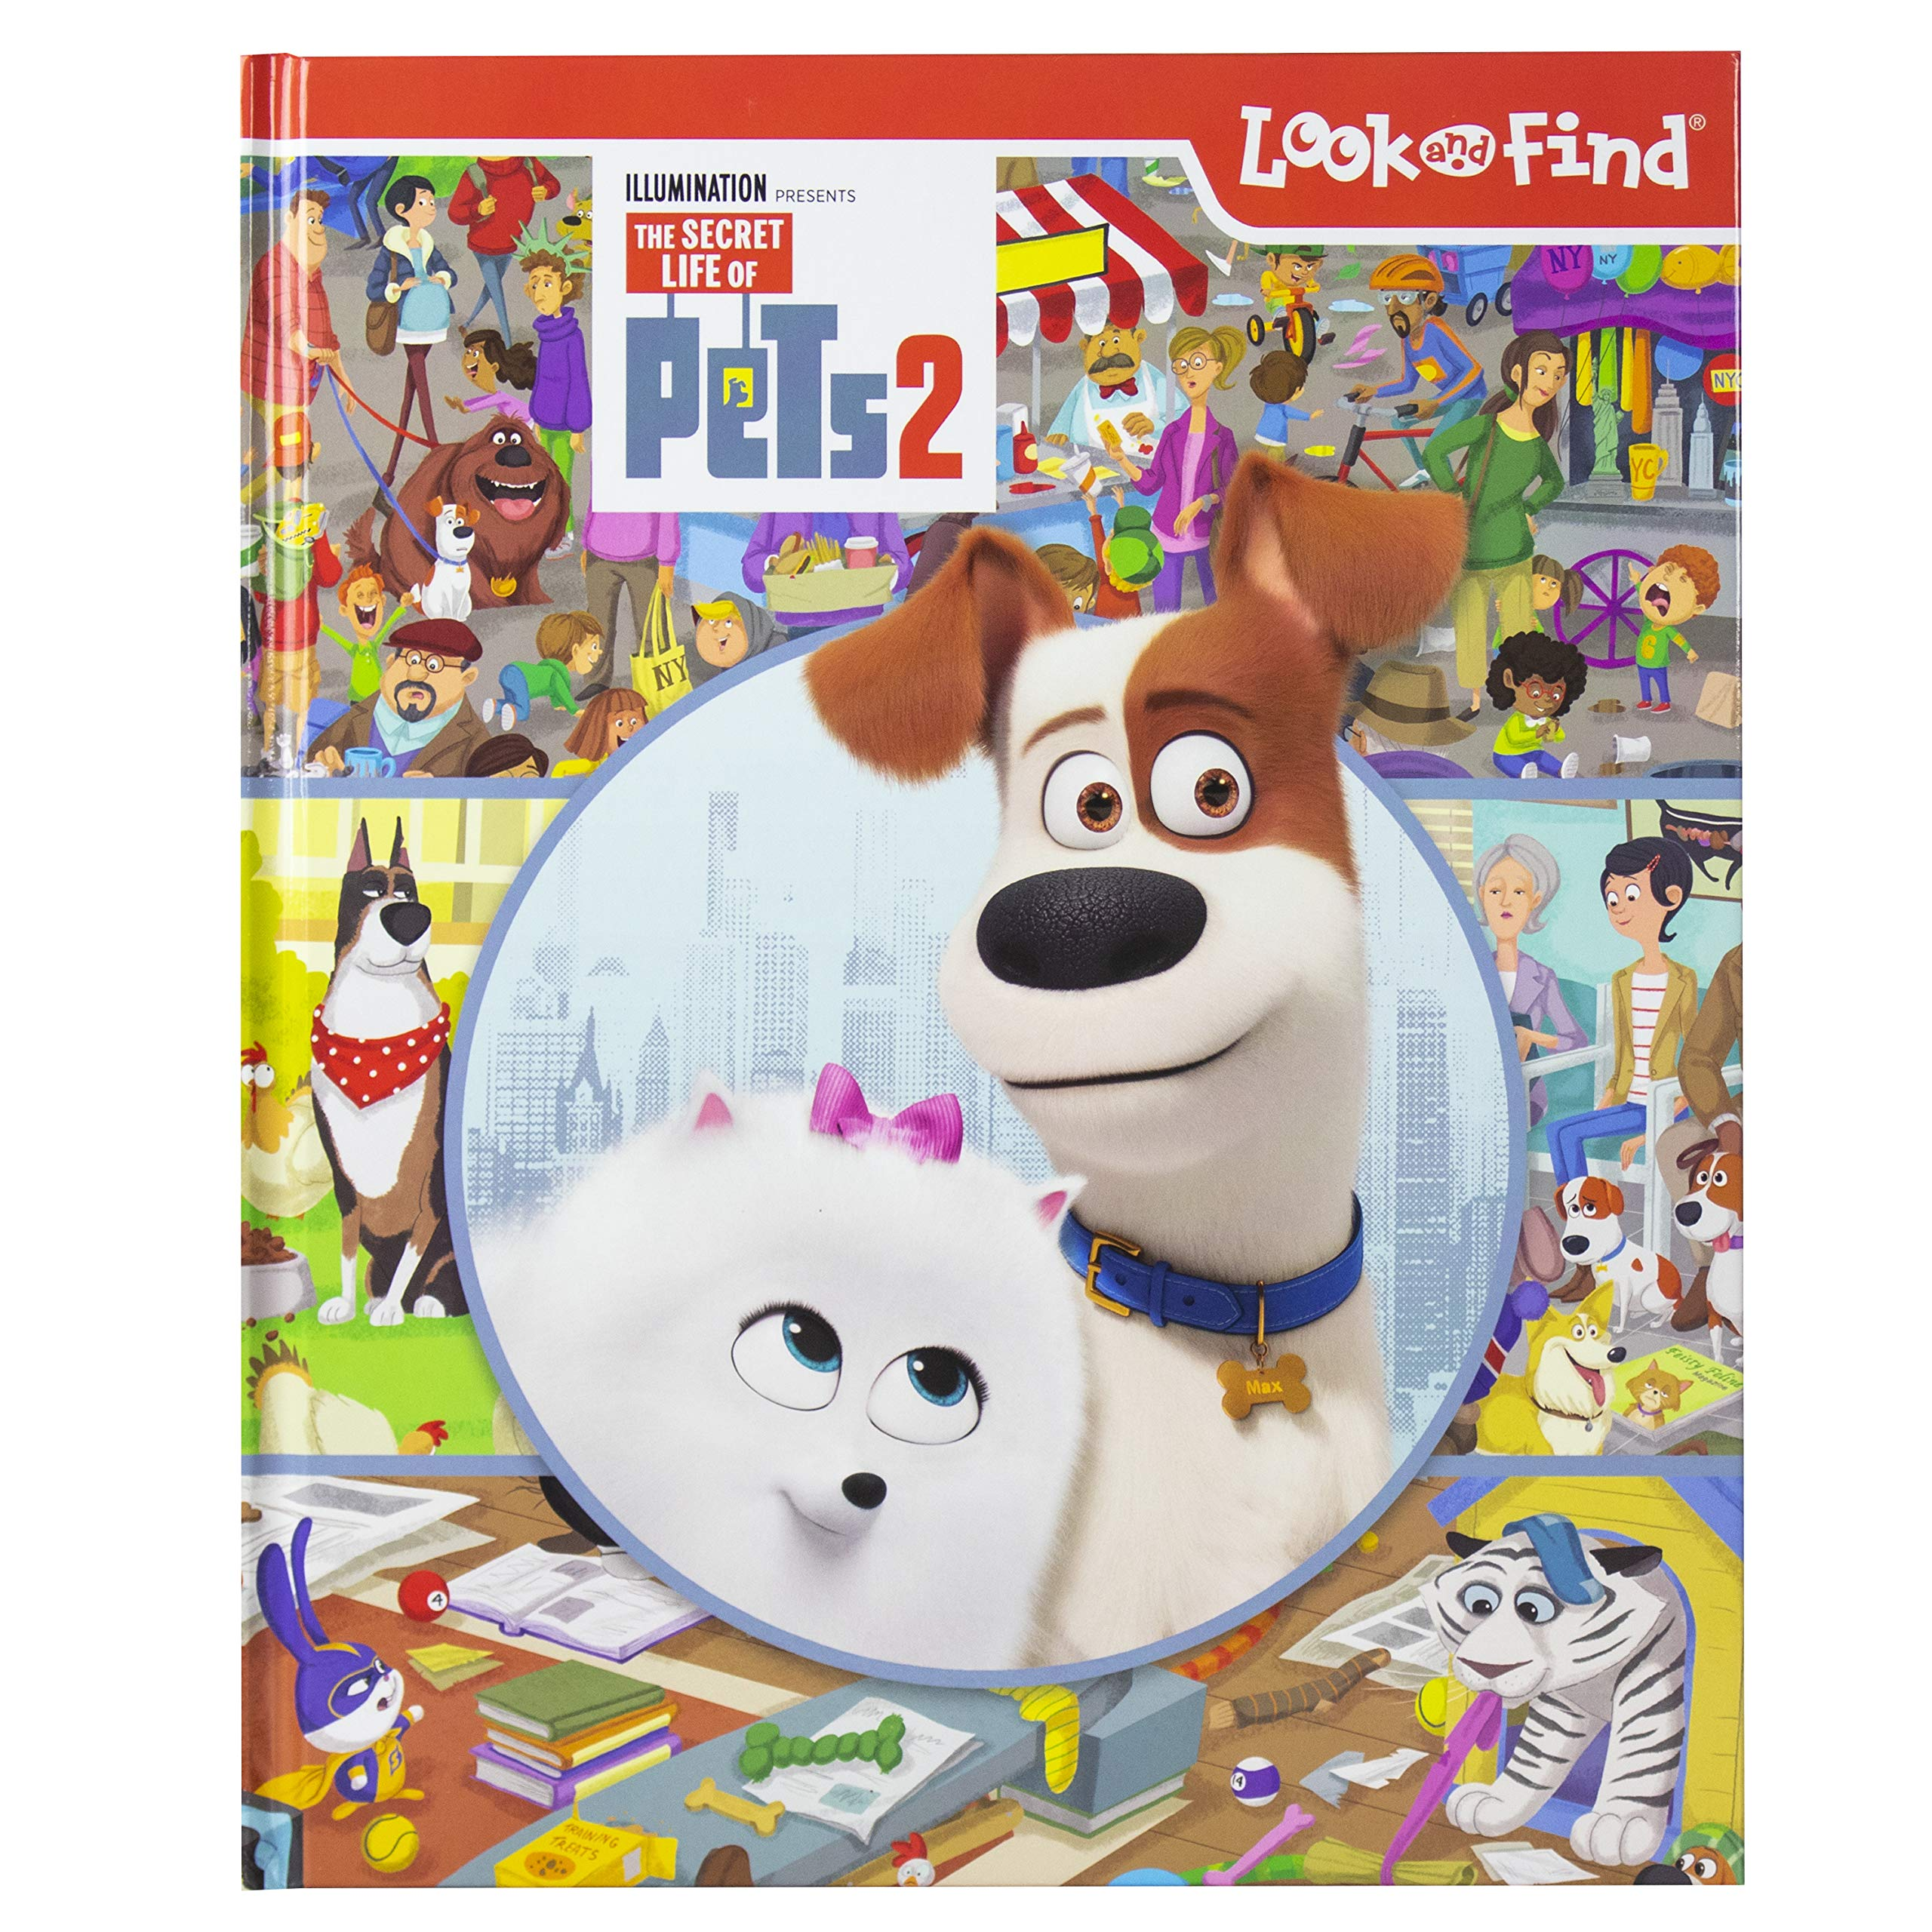 The Secret Life Of Pets 2 Look And Find Activity Book Pi Kids Editors Of Phoenix International Publications Editors Of Phoenix International Publications Editors Of Phoenix International Publications Editors Of Phoenix